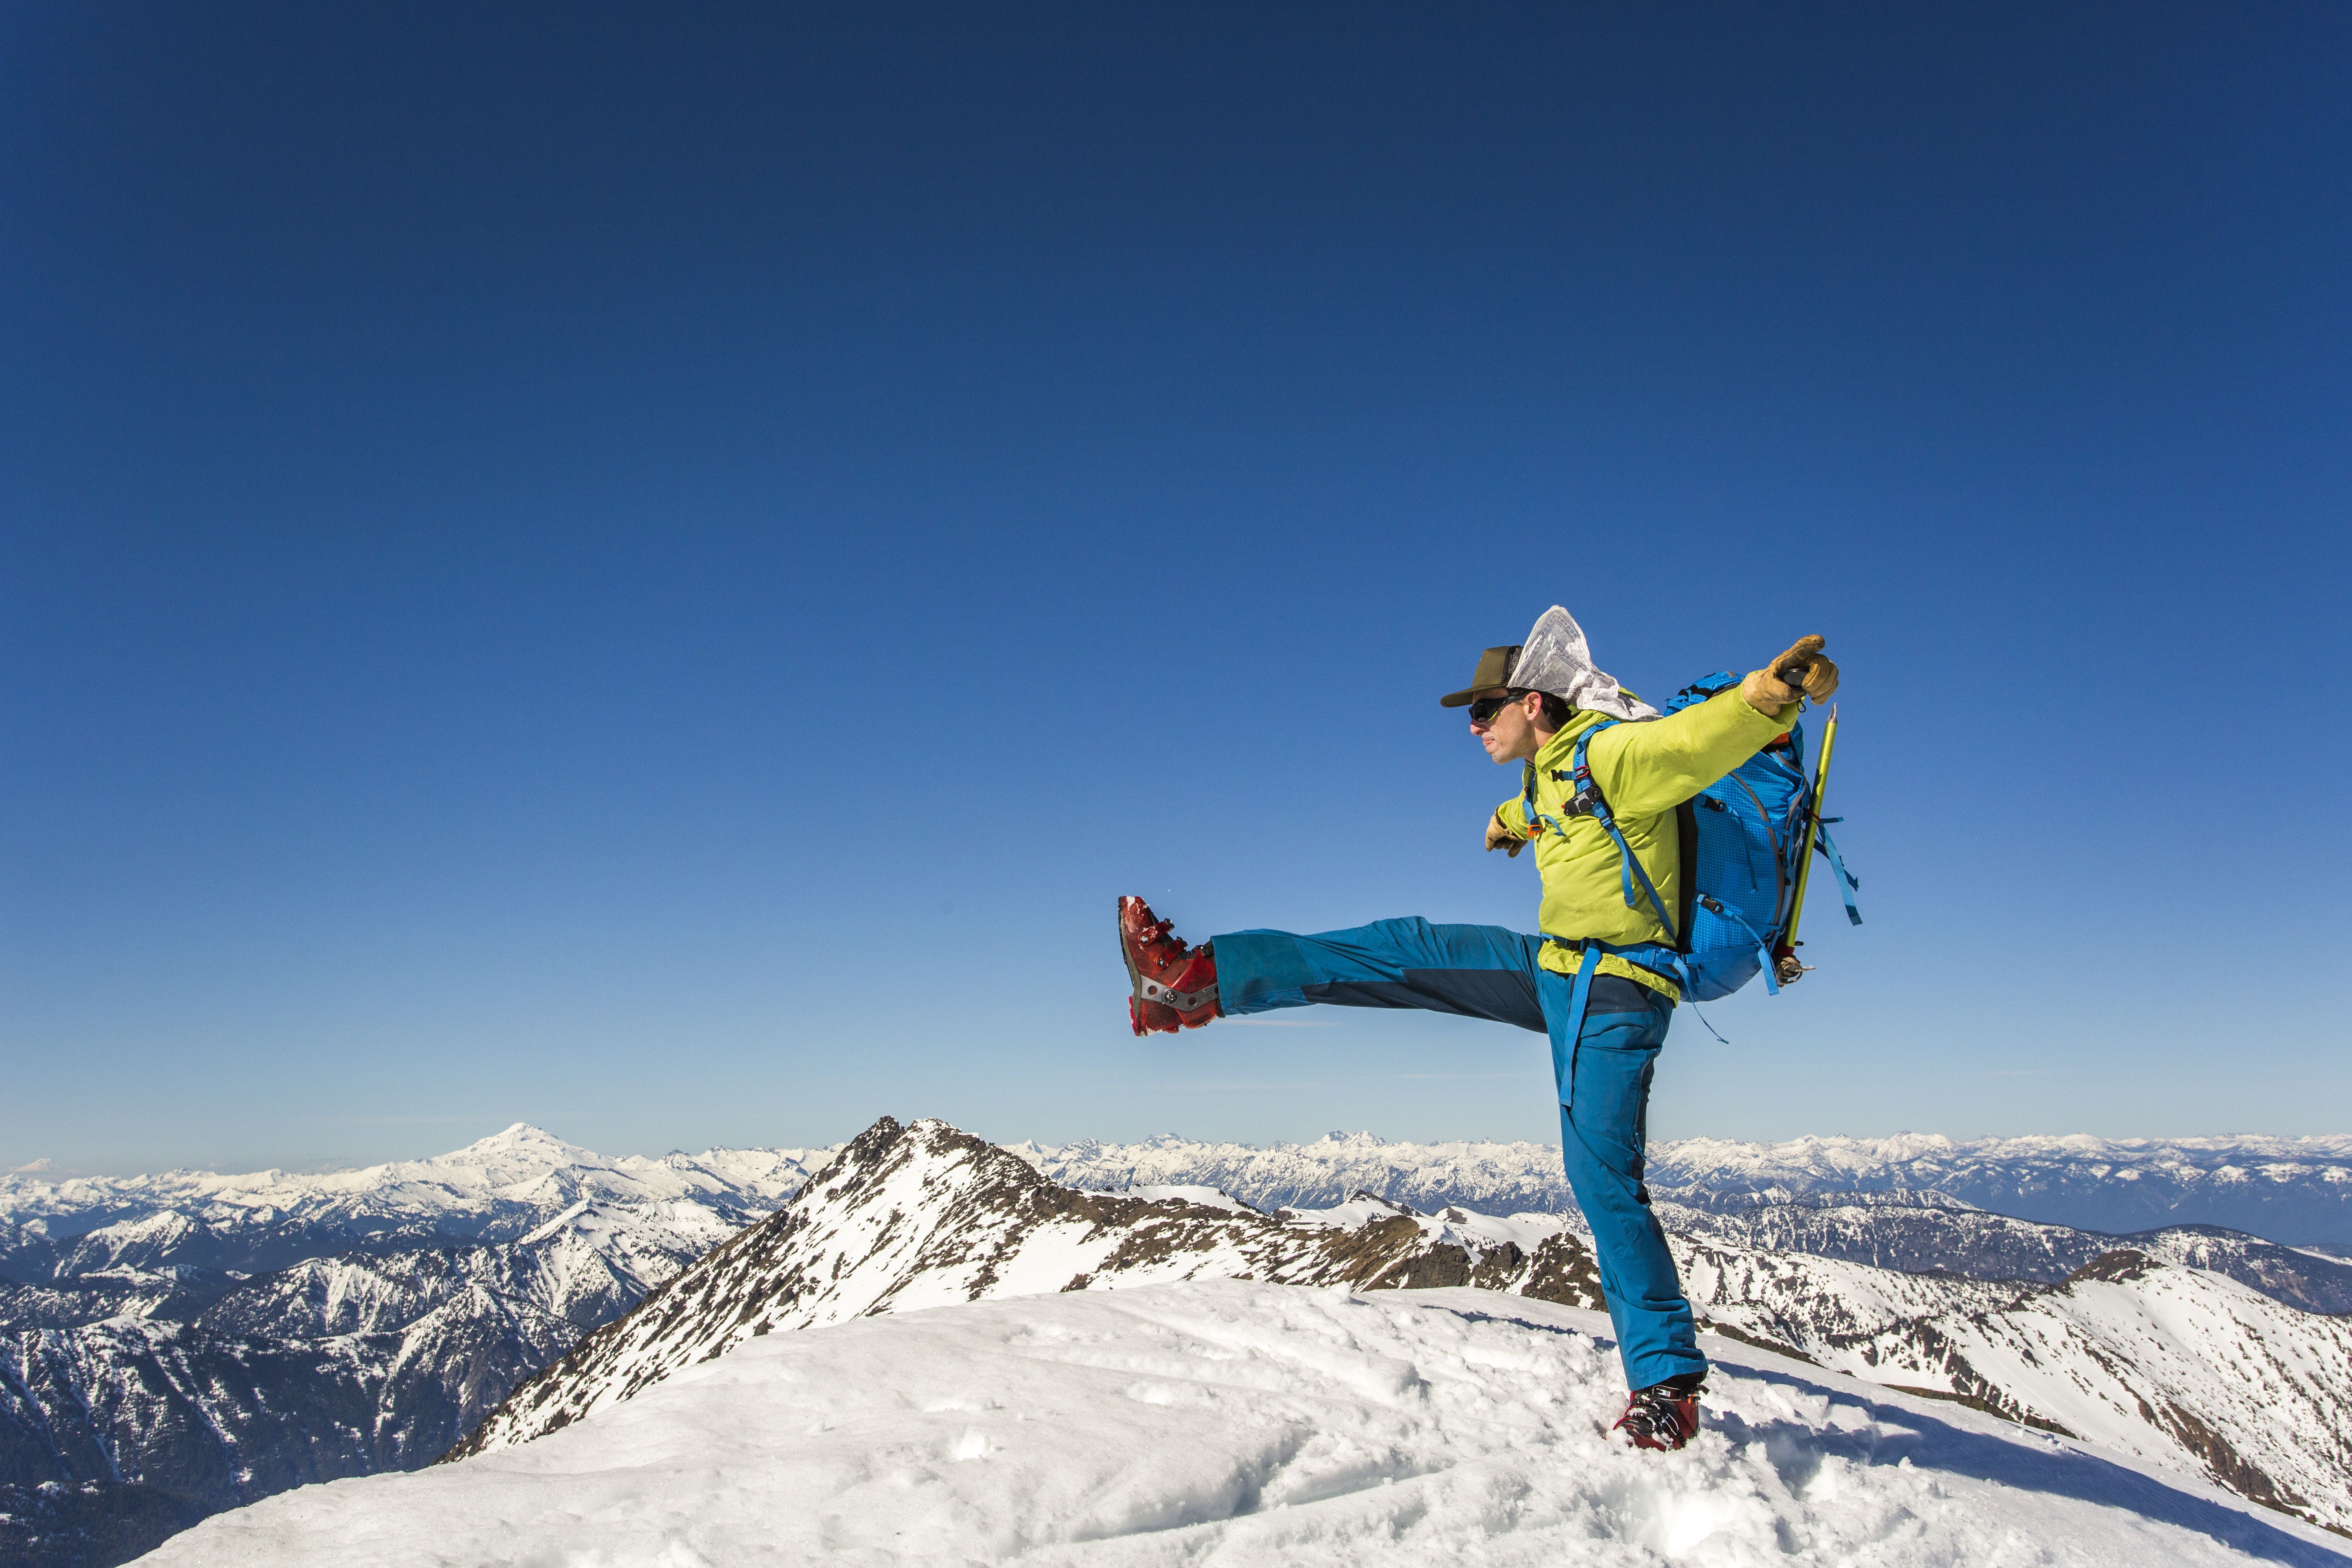 Backpacker standing on one leg on top of snowy summit against clear blue sky, Leavenworth, Washington, USA